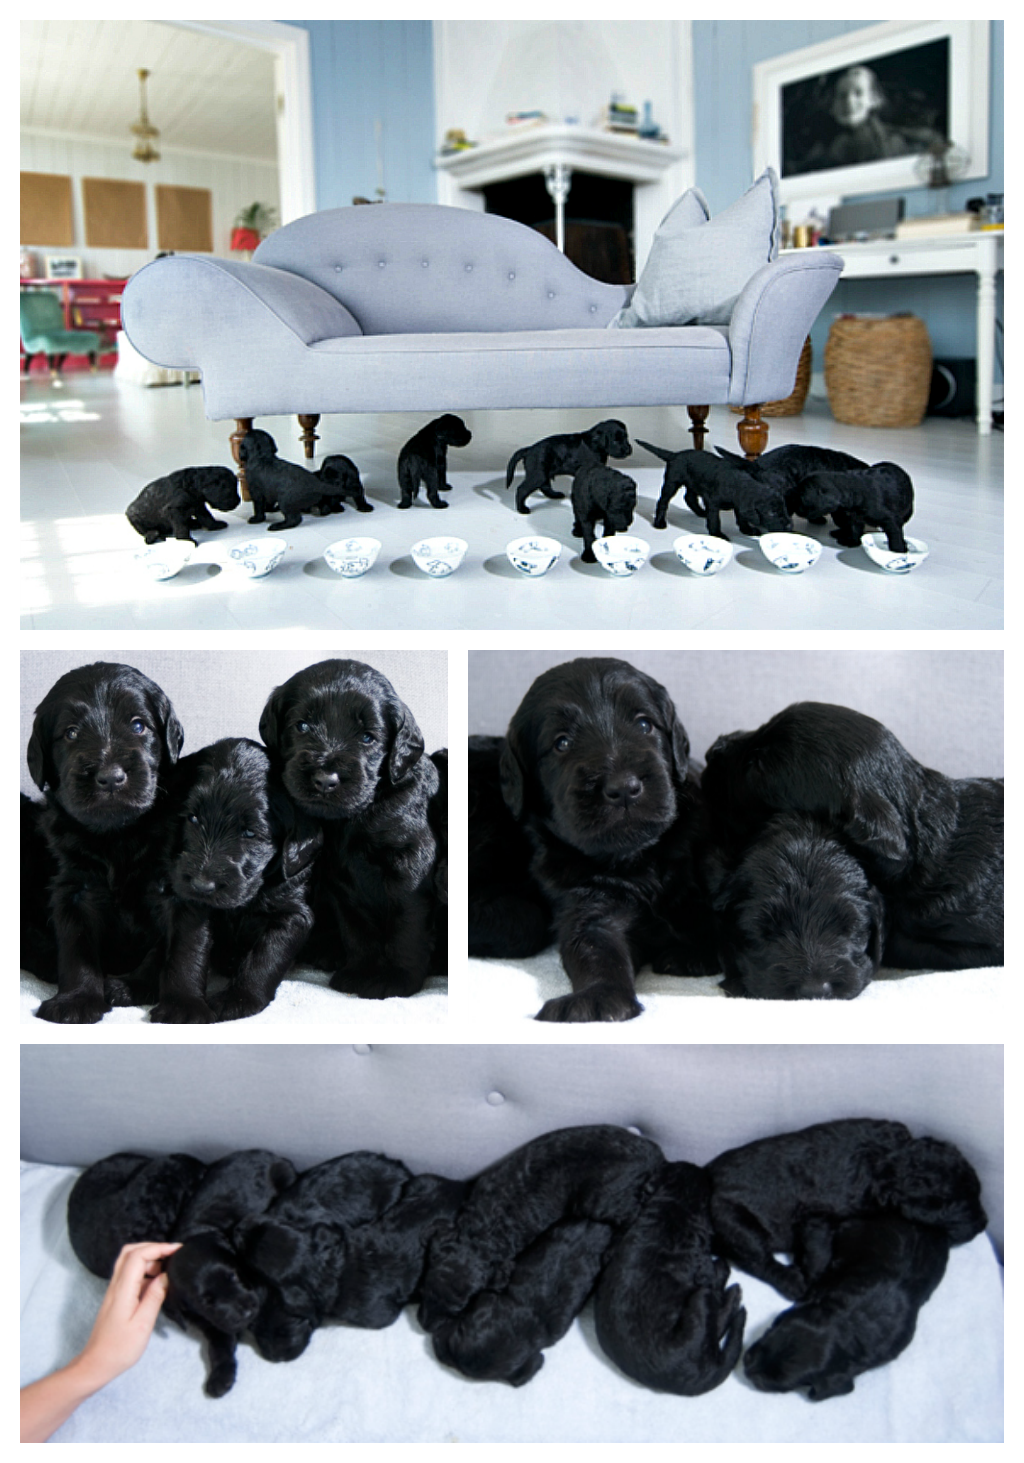 Milly-Kakao-with-her-9-puppies-2